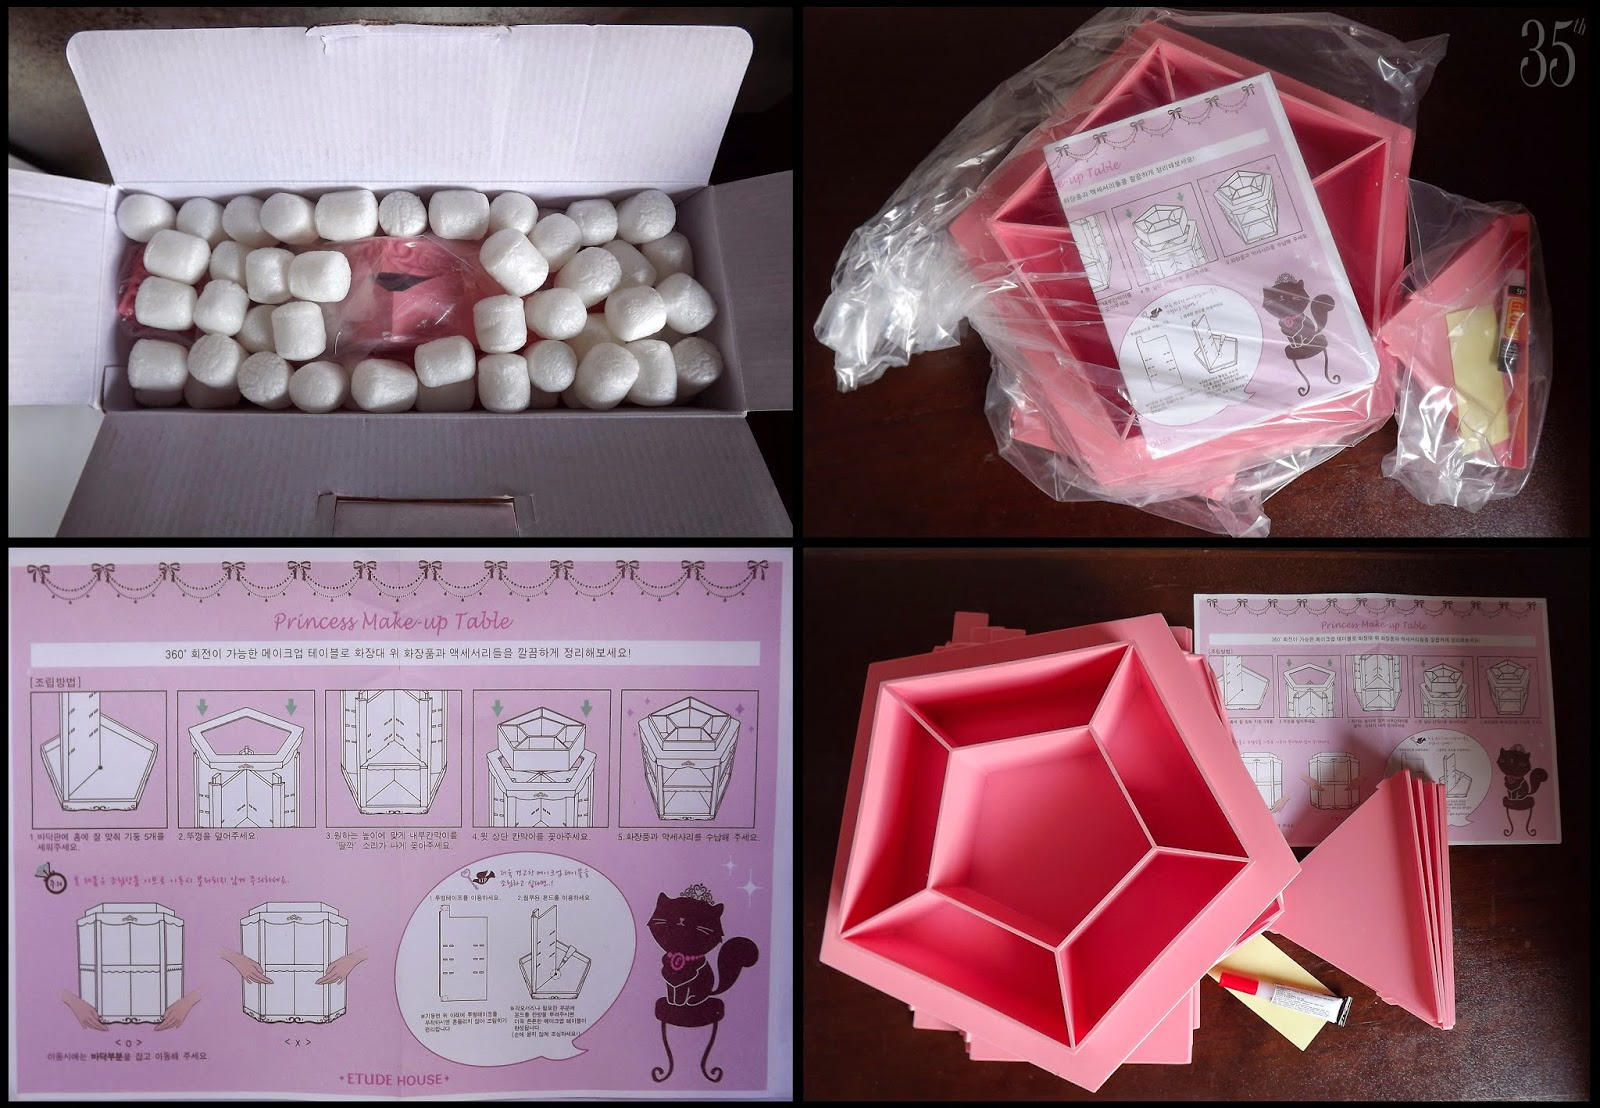 Etude House Princess Make-up table